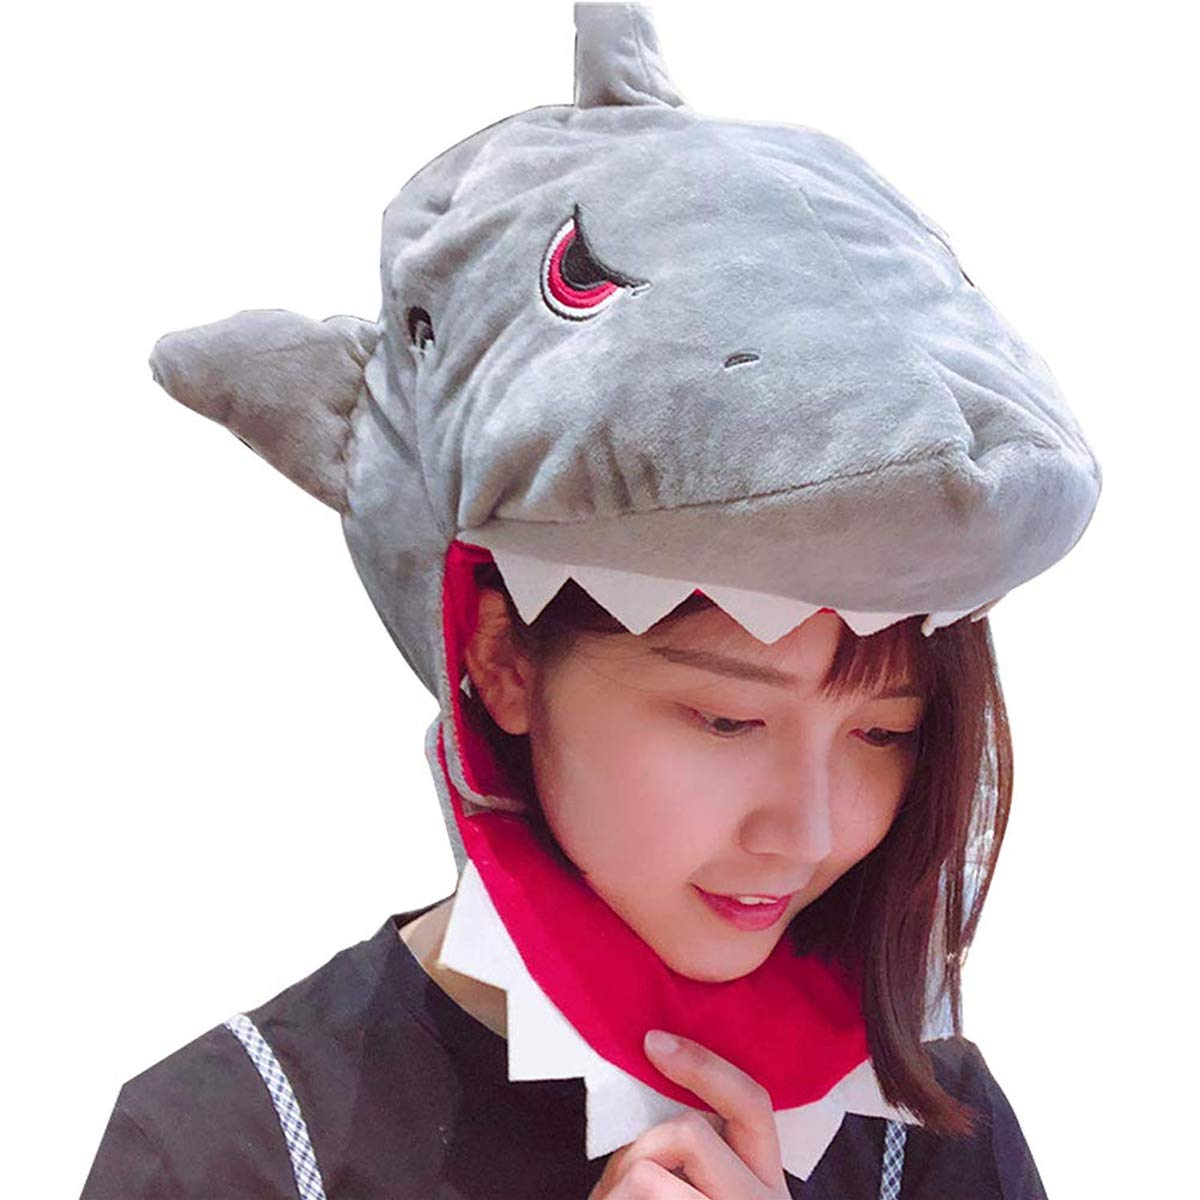 HYYER Funny Plush Animal Hat Cap Party Gift Halloween Christmas Novelty Party Dress up Cosplay